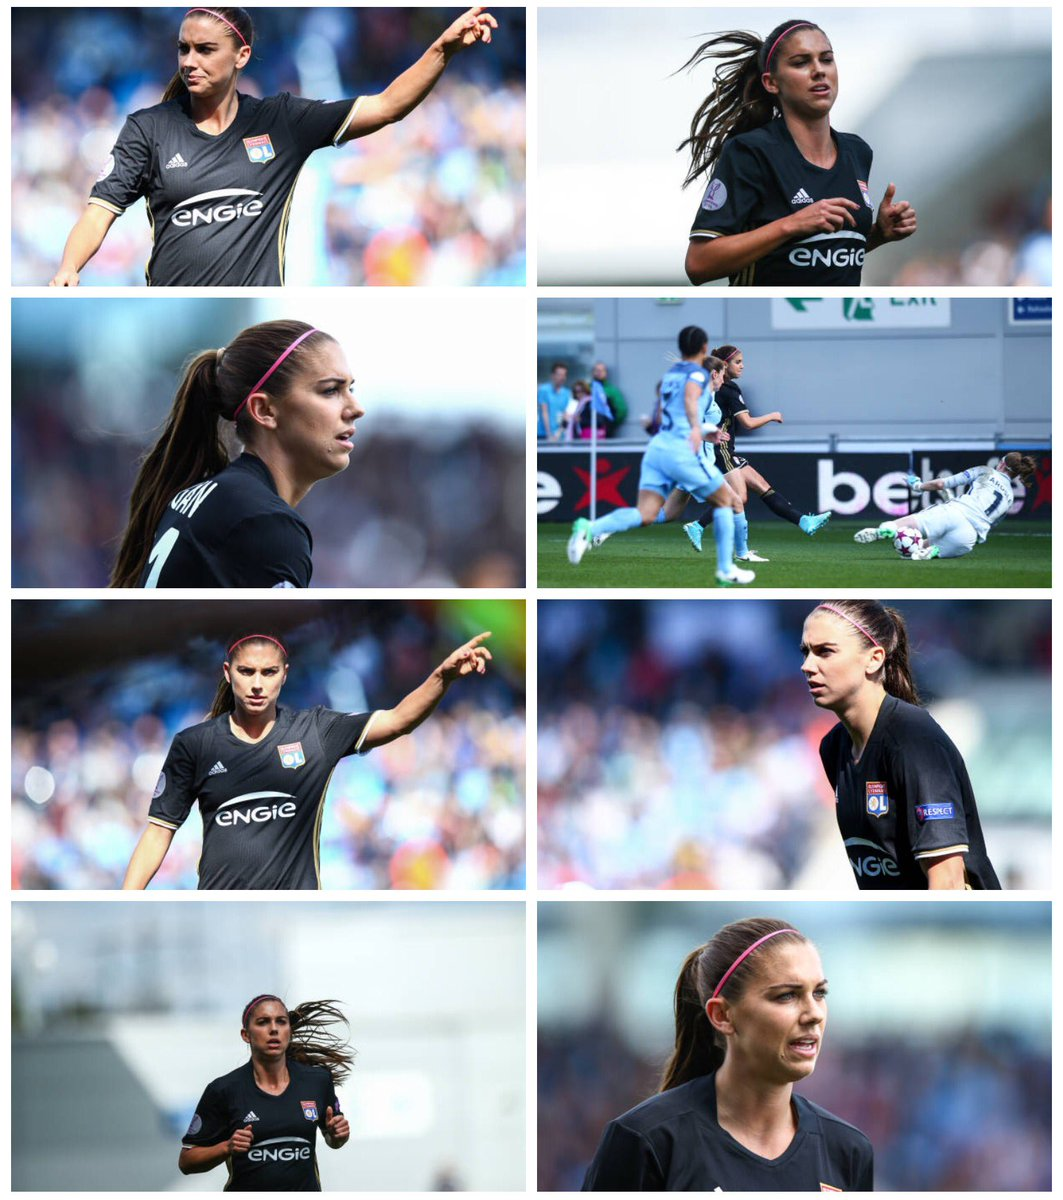 Photos from today&#39;s match. #AlexMorgan #TeamOL #USWNT<br>http://pic.twitter.com/c1I2klqHjE